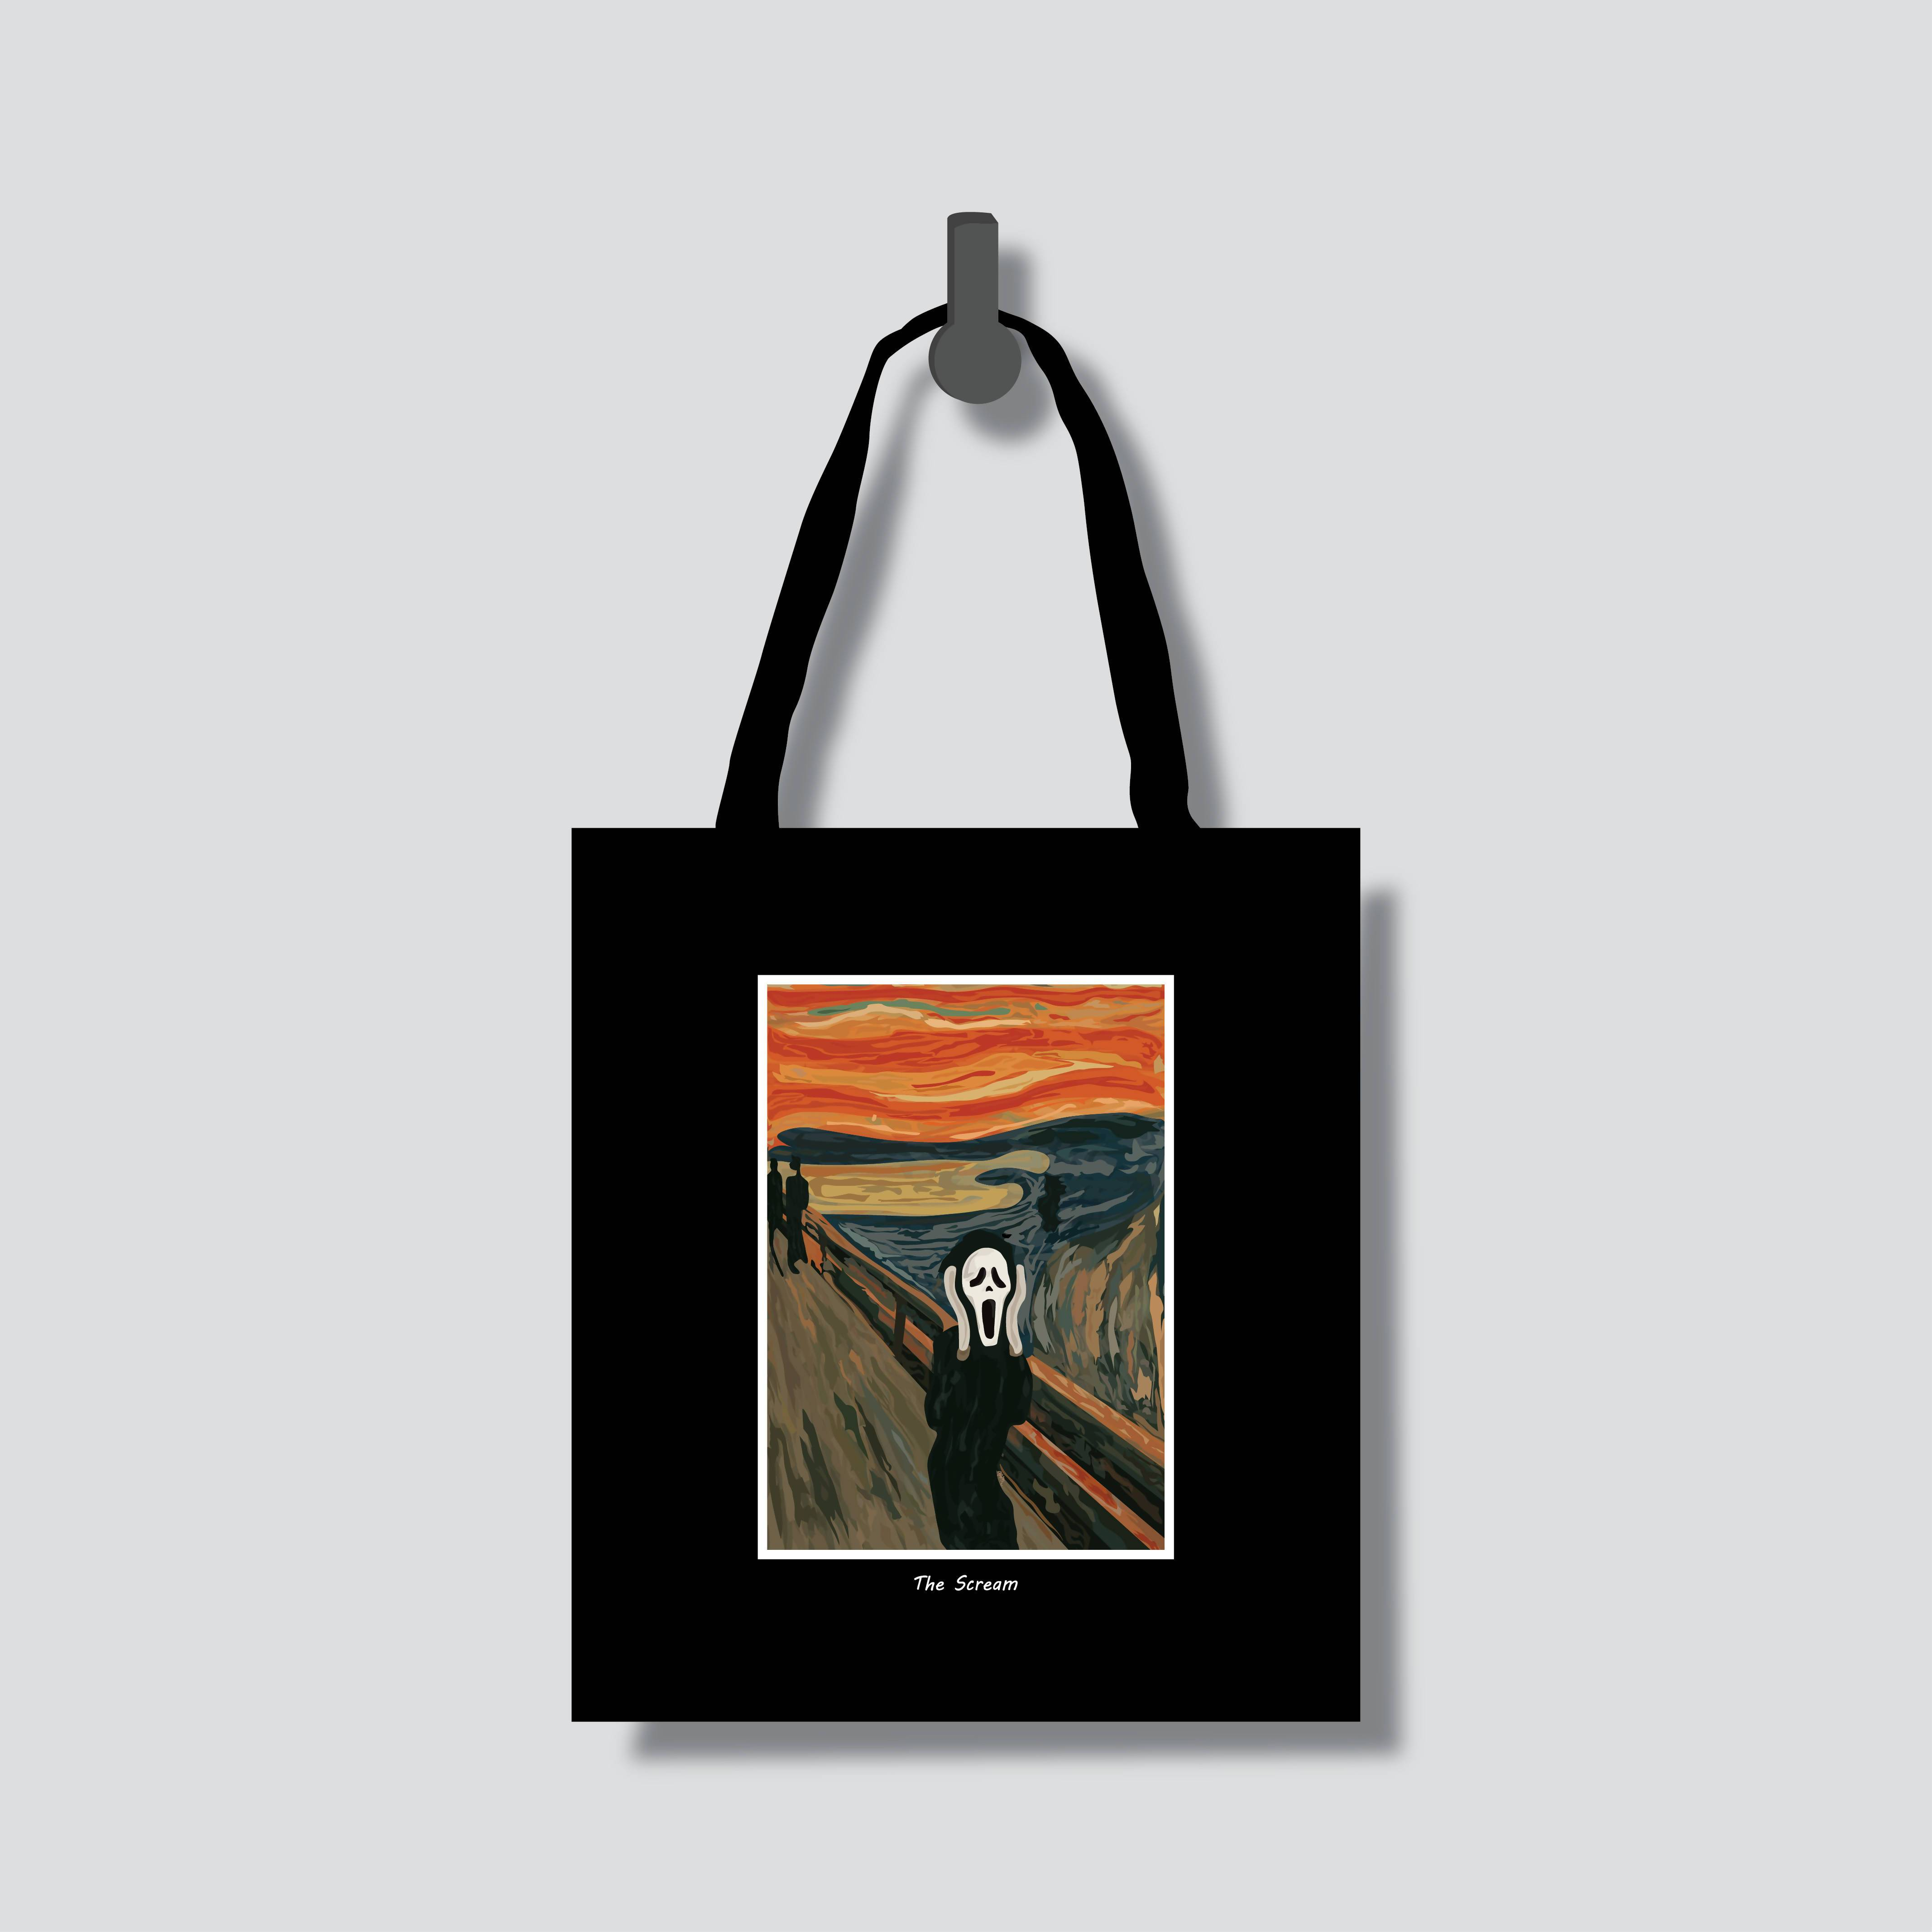 The Scream Totebag - Tote Bags - Chaps V8.2 - Naiise